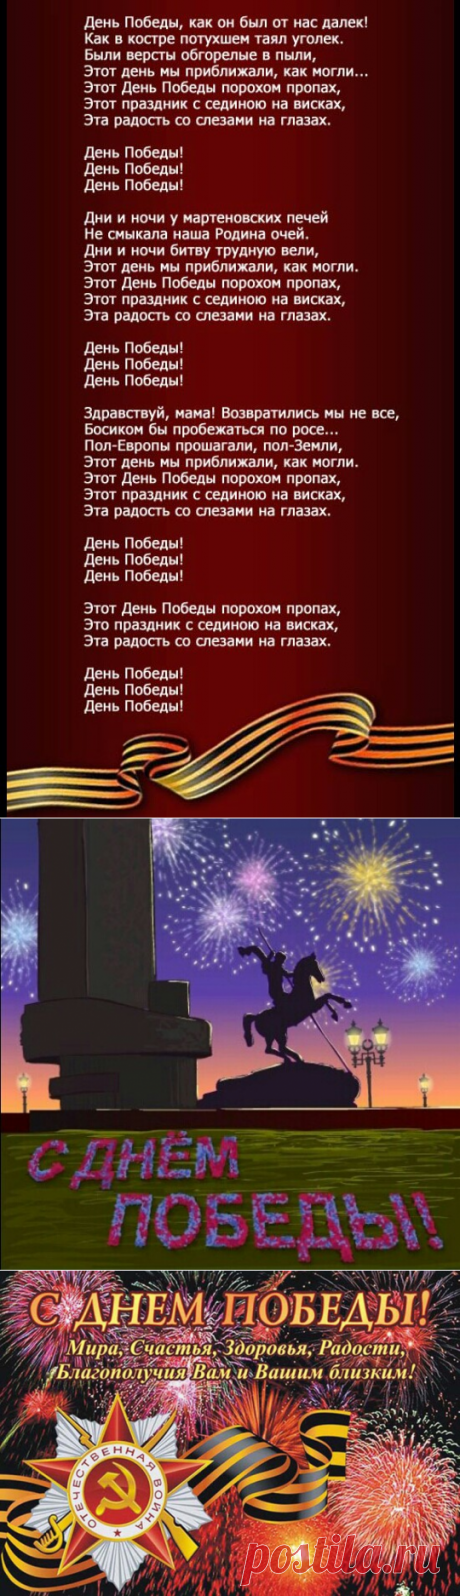 Cards on May 9, 2017 - Verses for May 9 the Victory Day in pictures - the Lyrics the Victory Day - Pictures with lyrics by the Victory Day on May 9